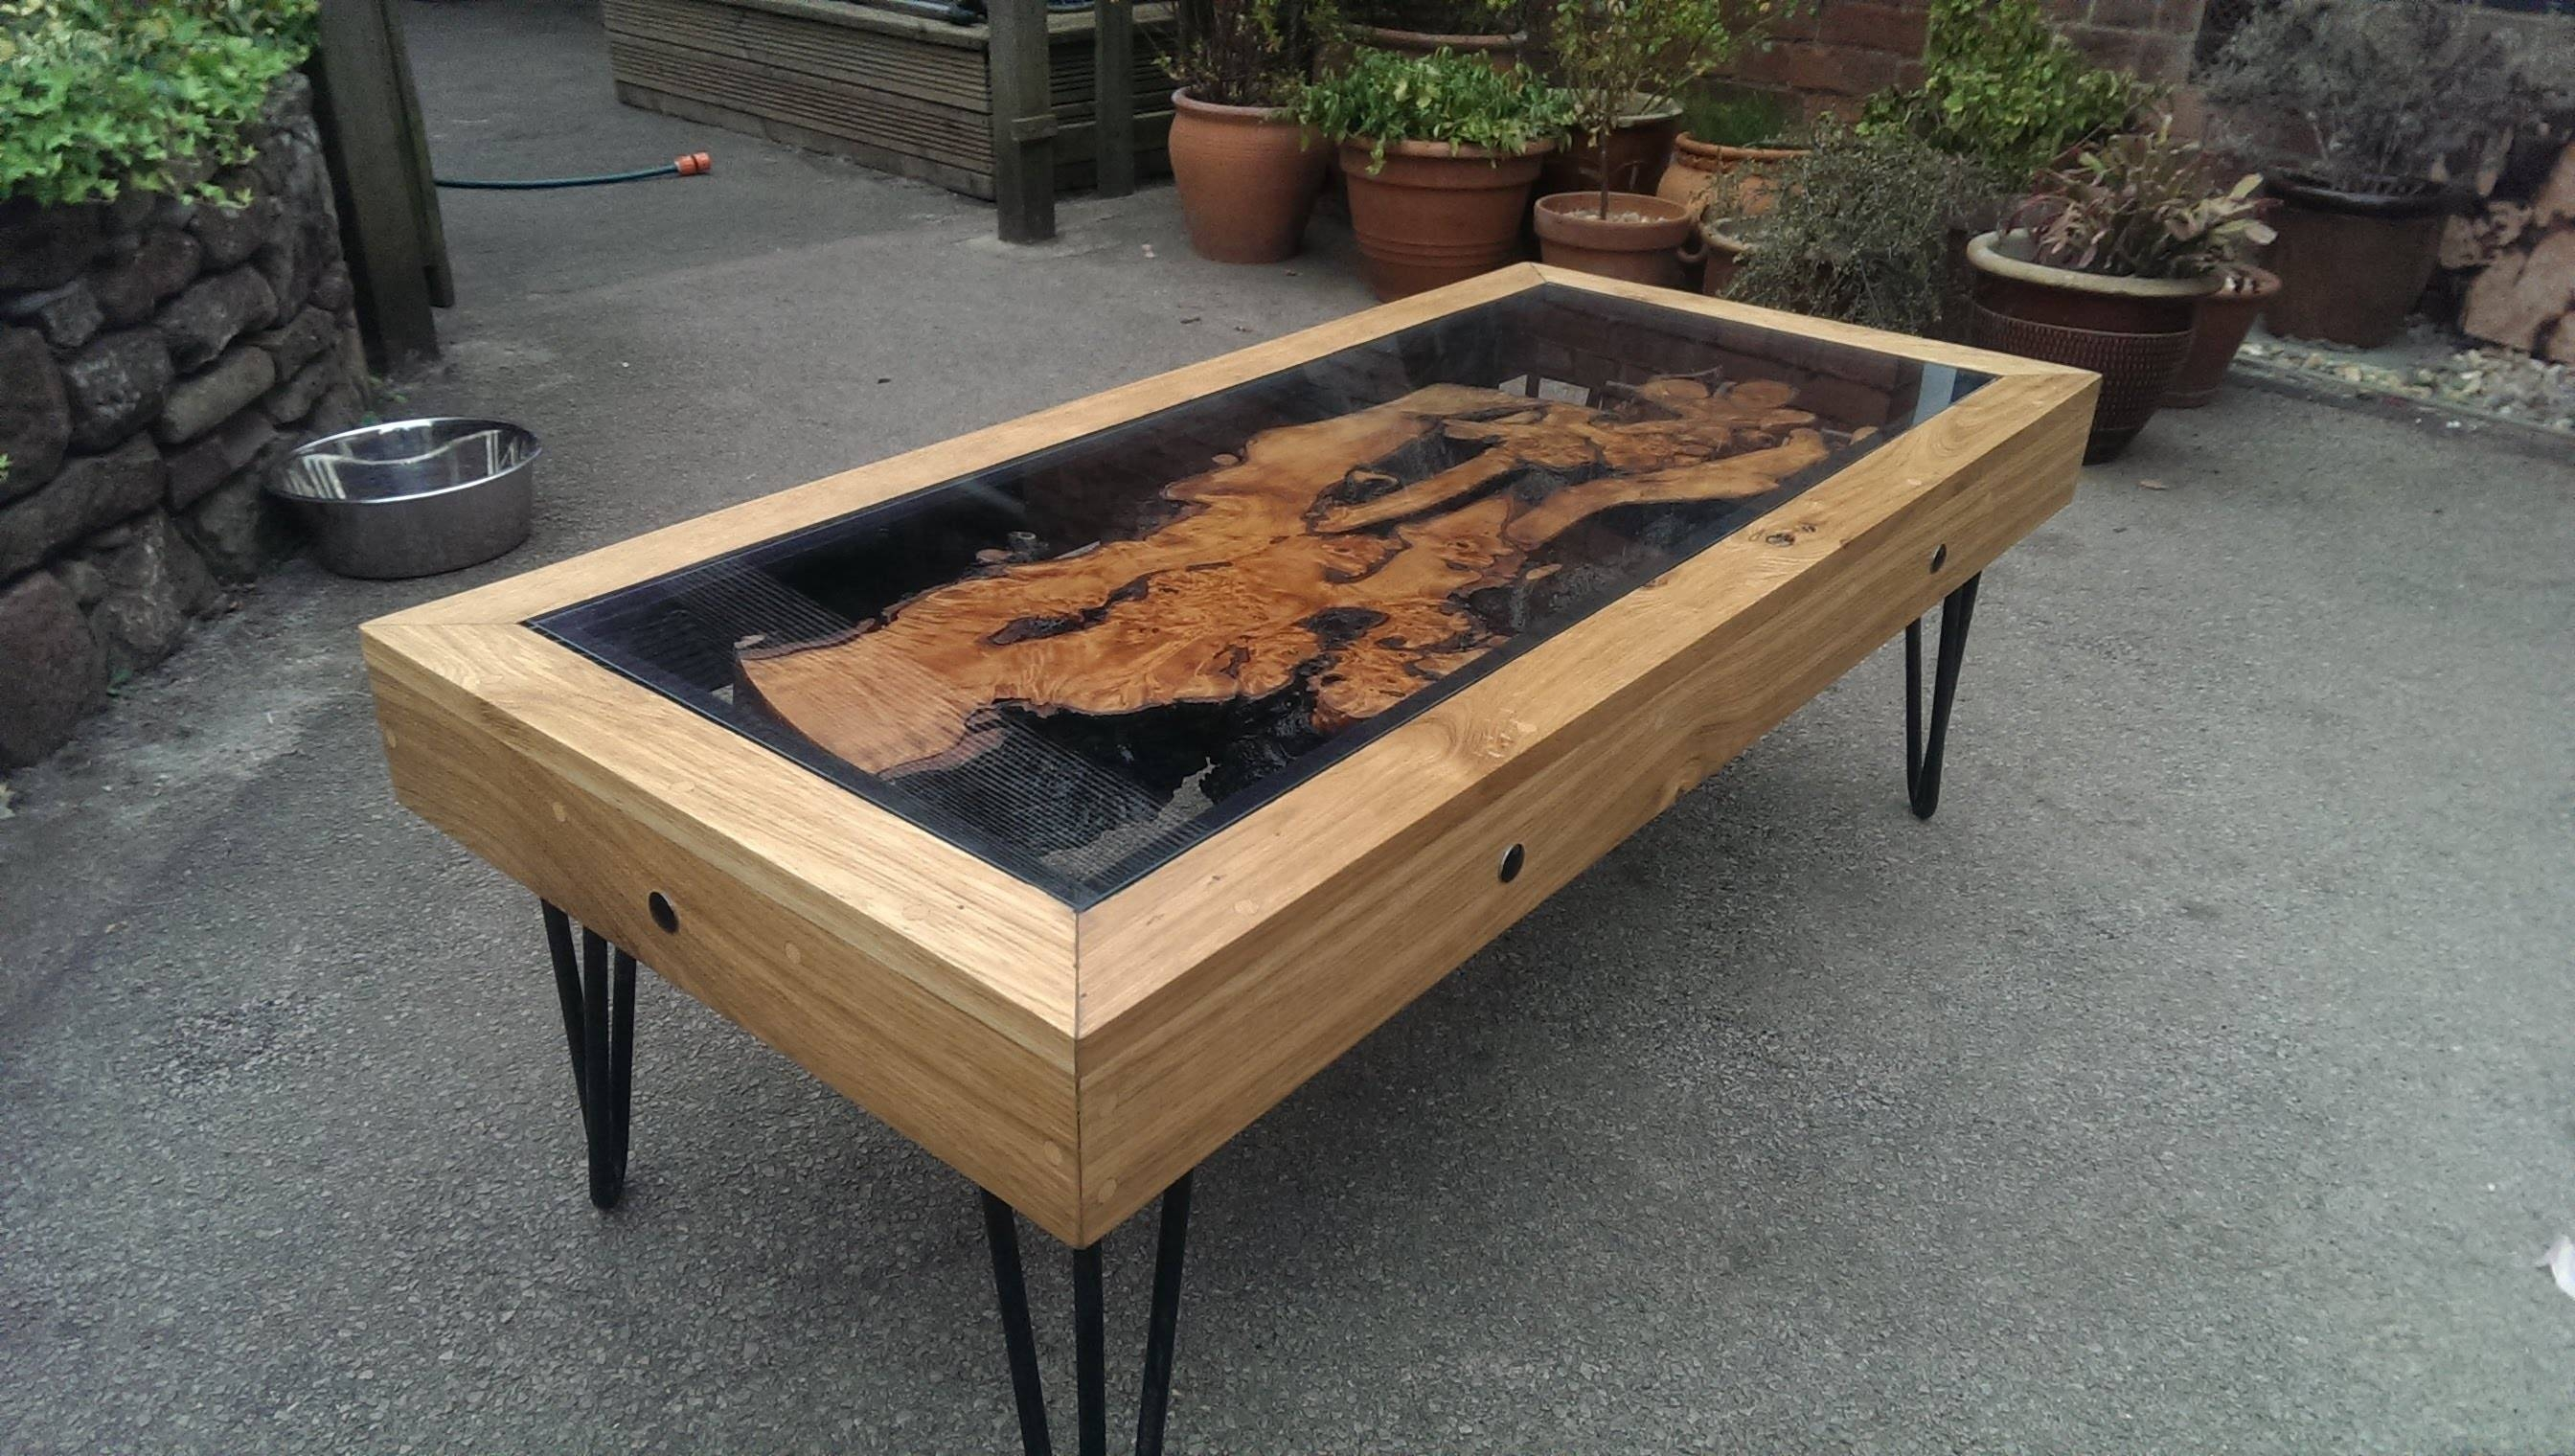 Tree Root, Oak And Glass Coffee Table: Reborn From Disaster inside Oak And Glass Coffee Tables (Image 28 of 30)